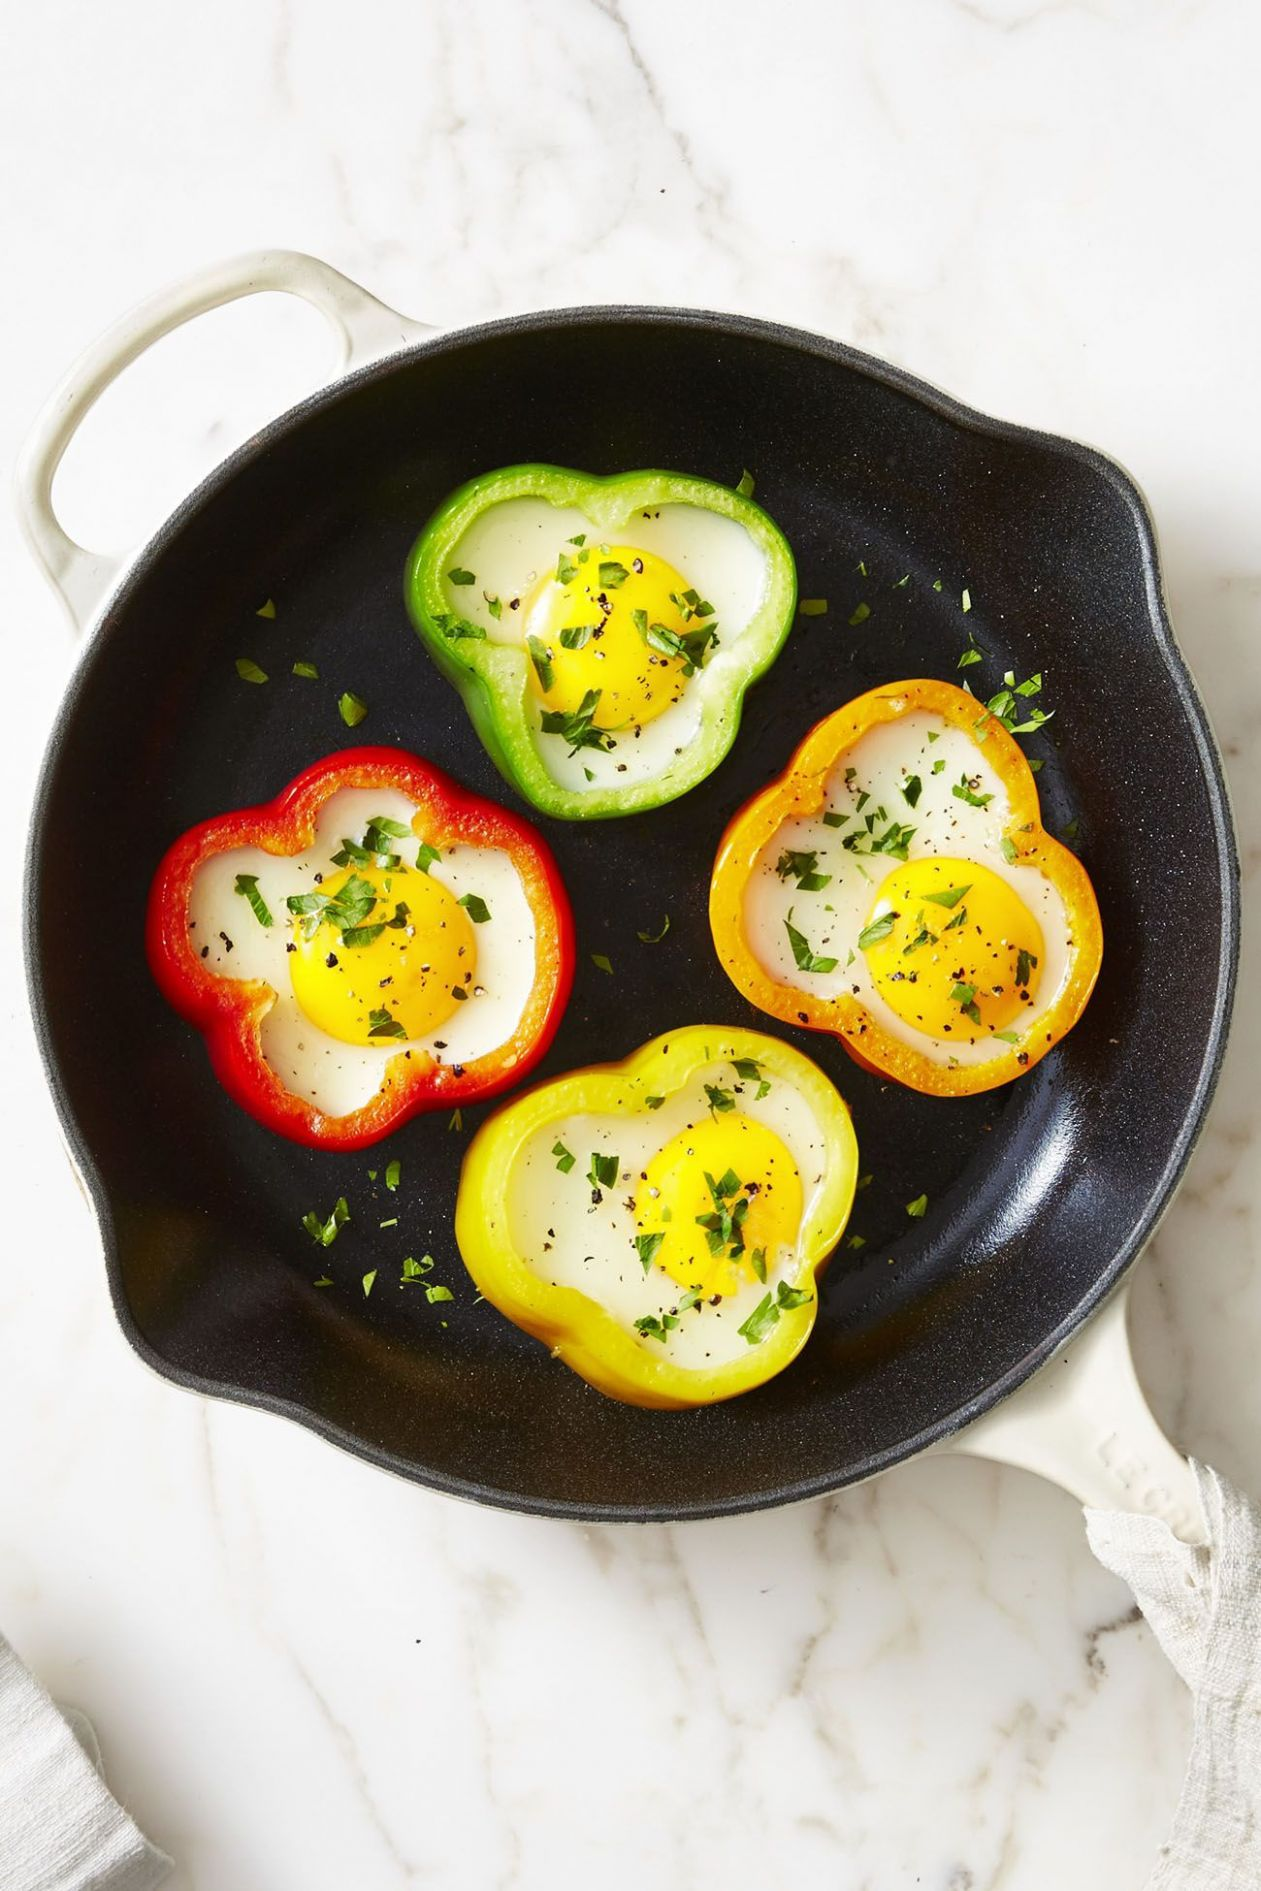 9+ Easy Egg Recipes - Ways to Cook Eggs for Breakfast - Simple Recipes Of Eggs